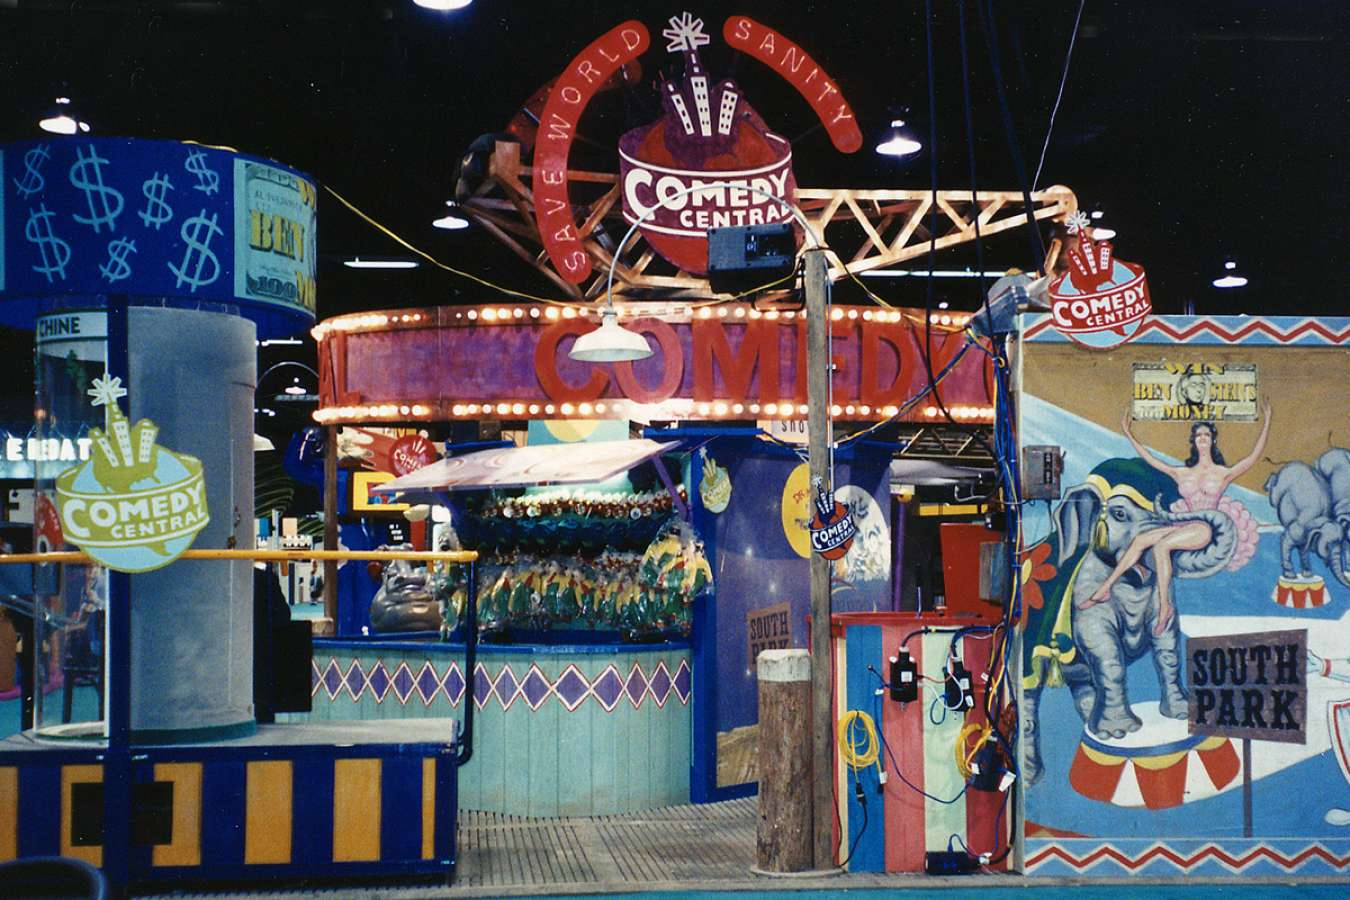 CC Carnival2 : Arcade games kept show attendees engaged and entertained